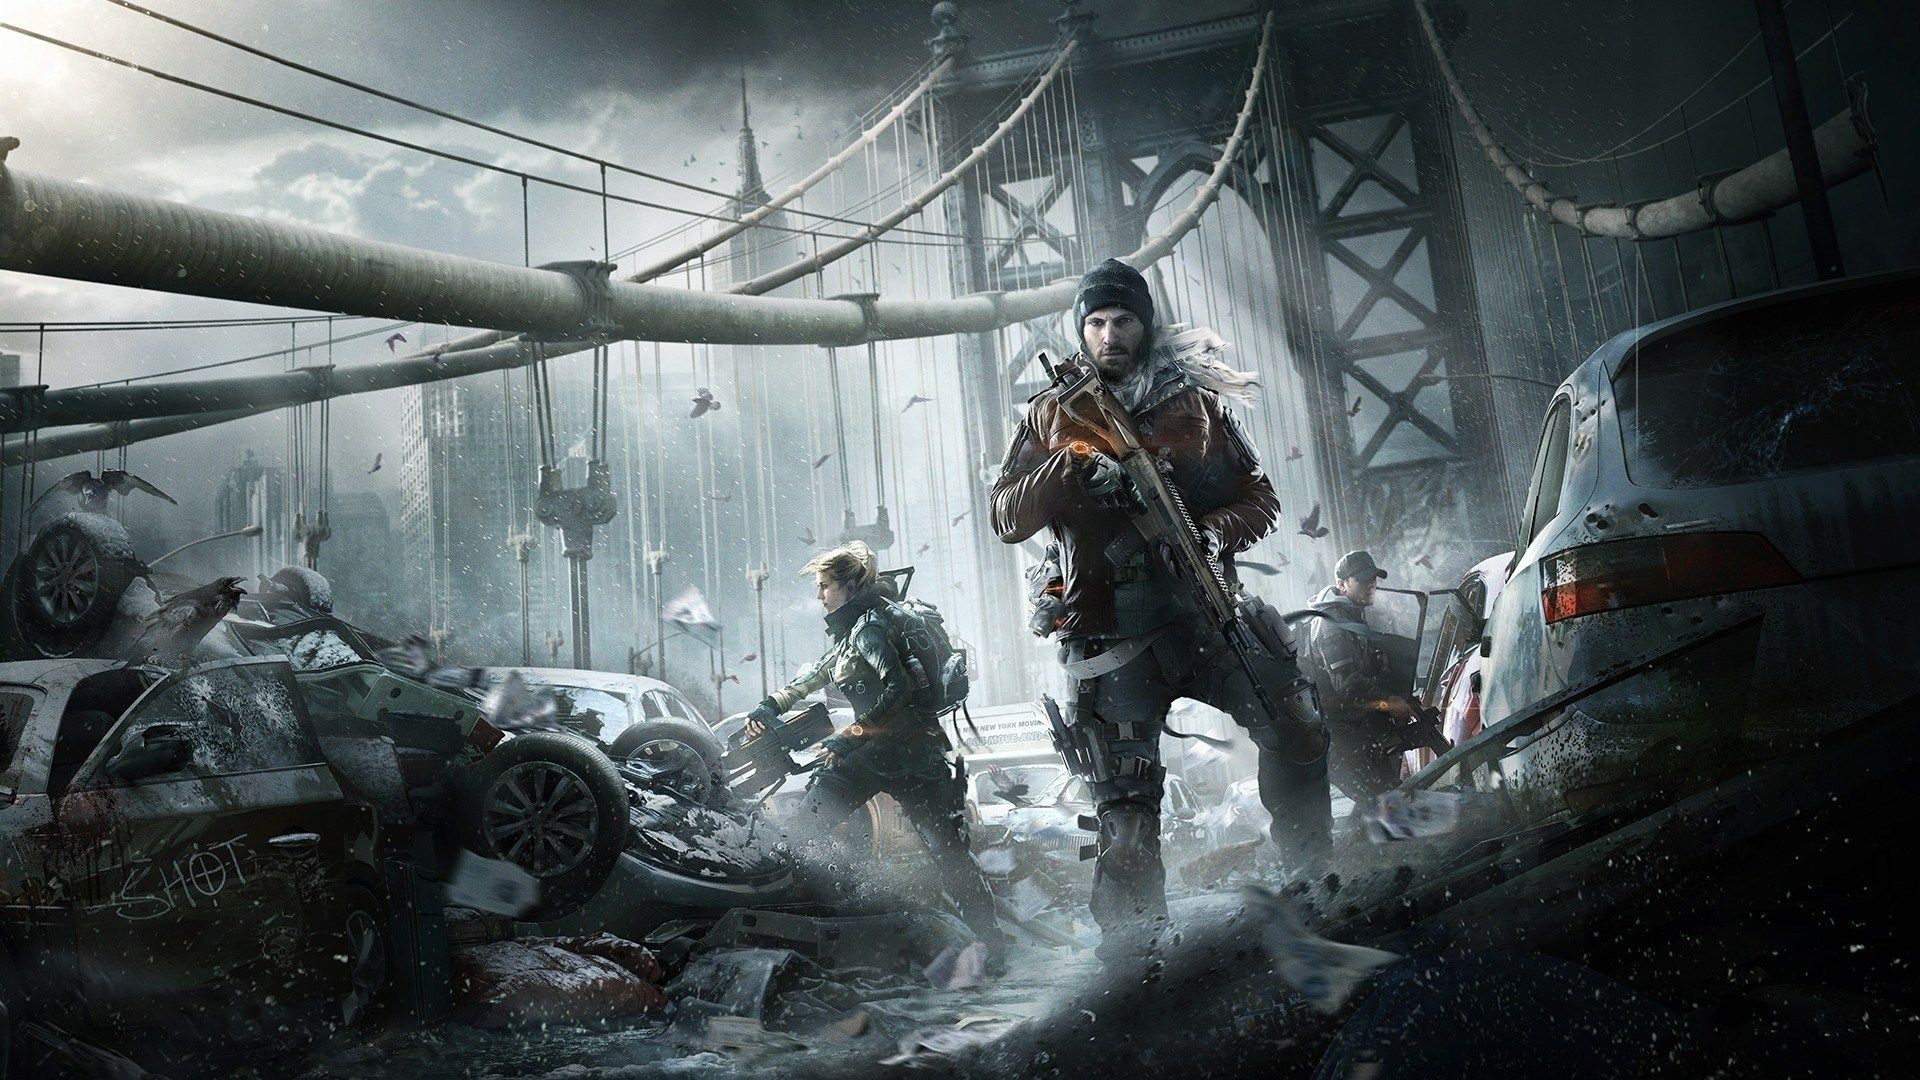 19x1080 The Division Game Wallpaper High Resolution Wallpapers Division Games Full Hd Pictures